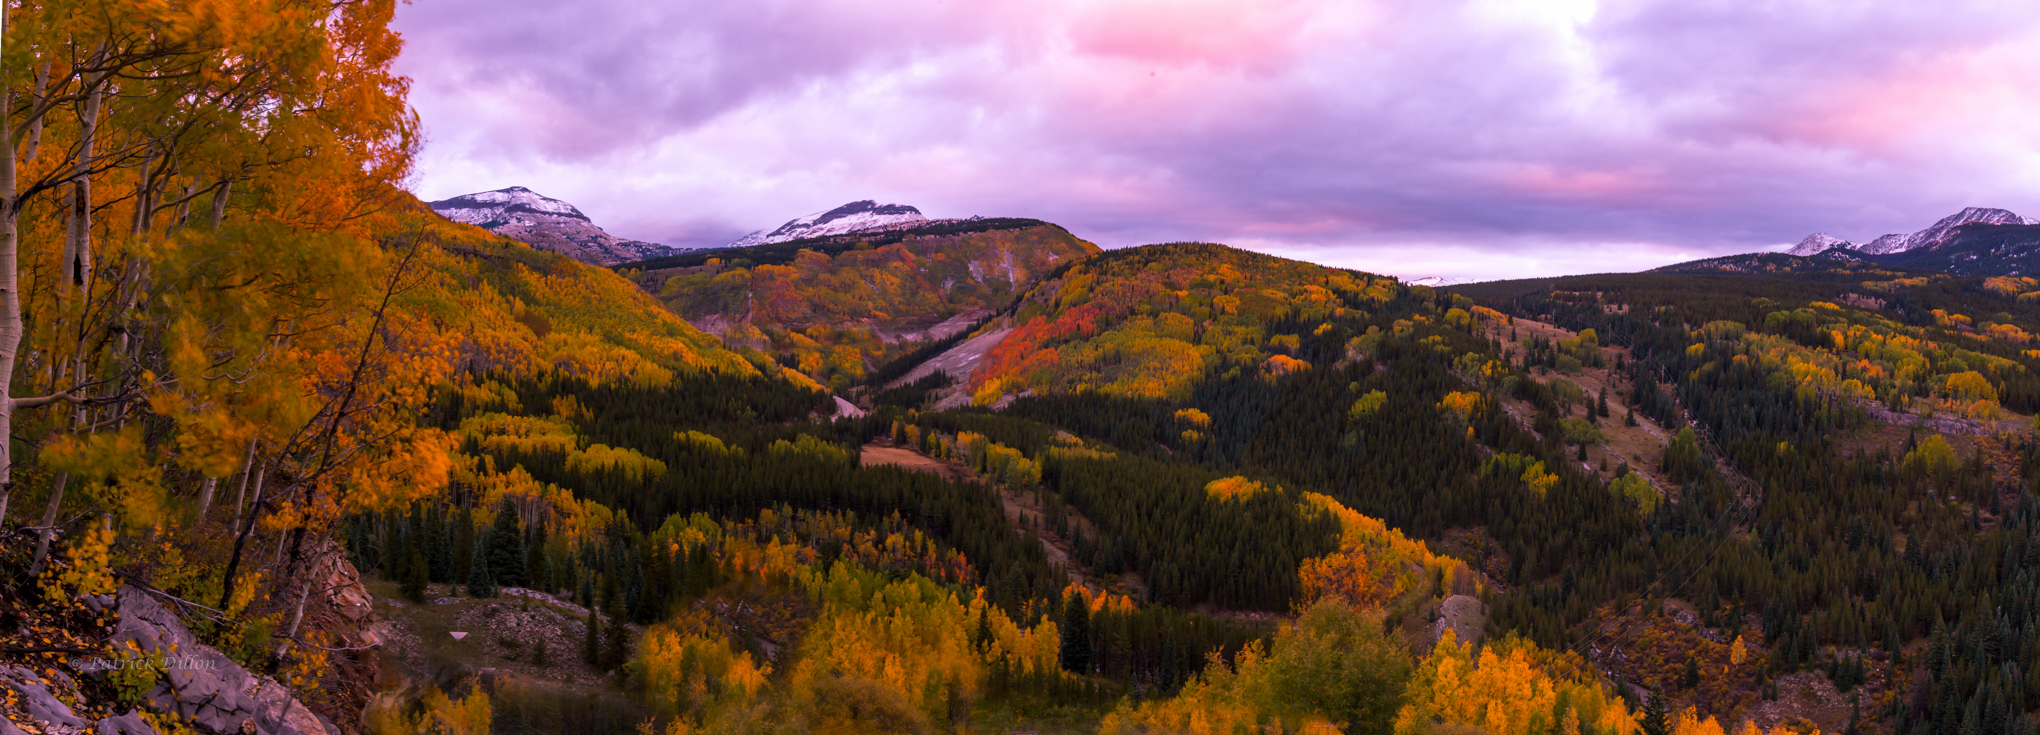 san juan mountains fall colors